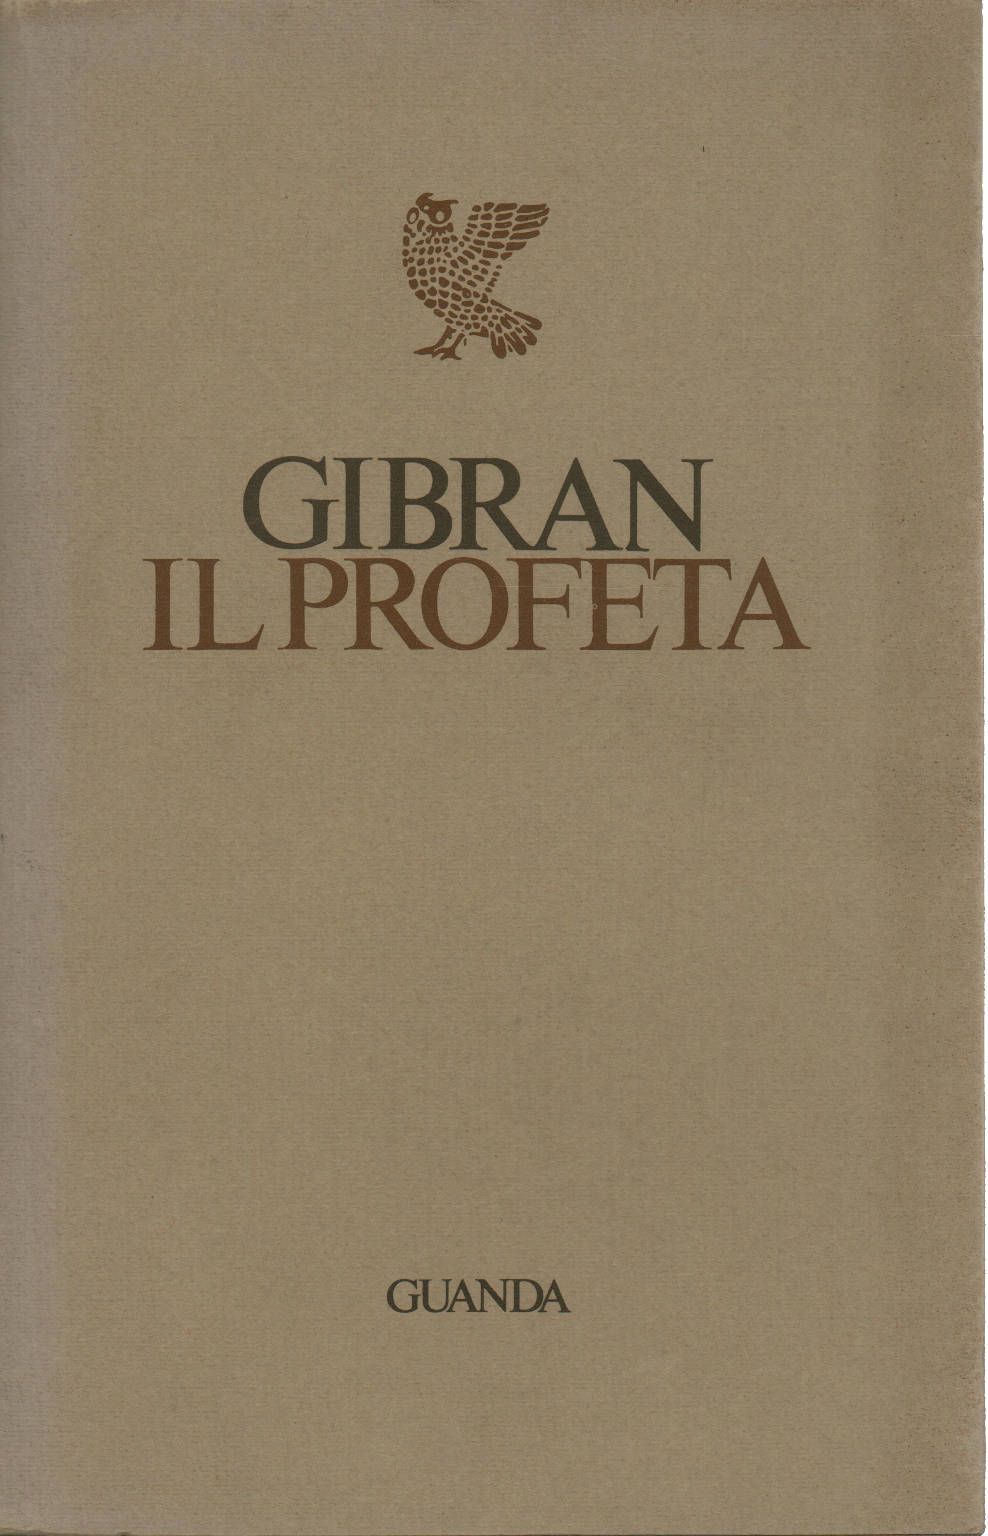 The Prophet Kahlil Gibran Foreign Poetry Poetry Library